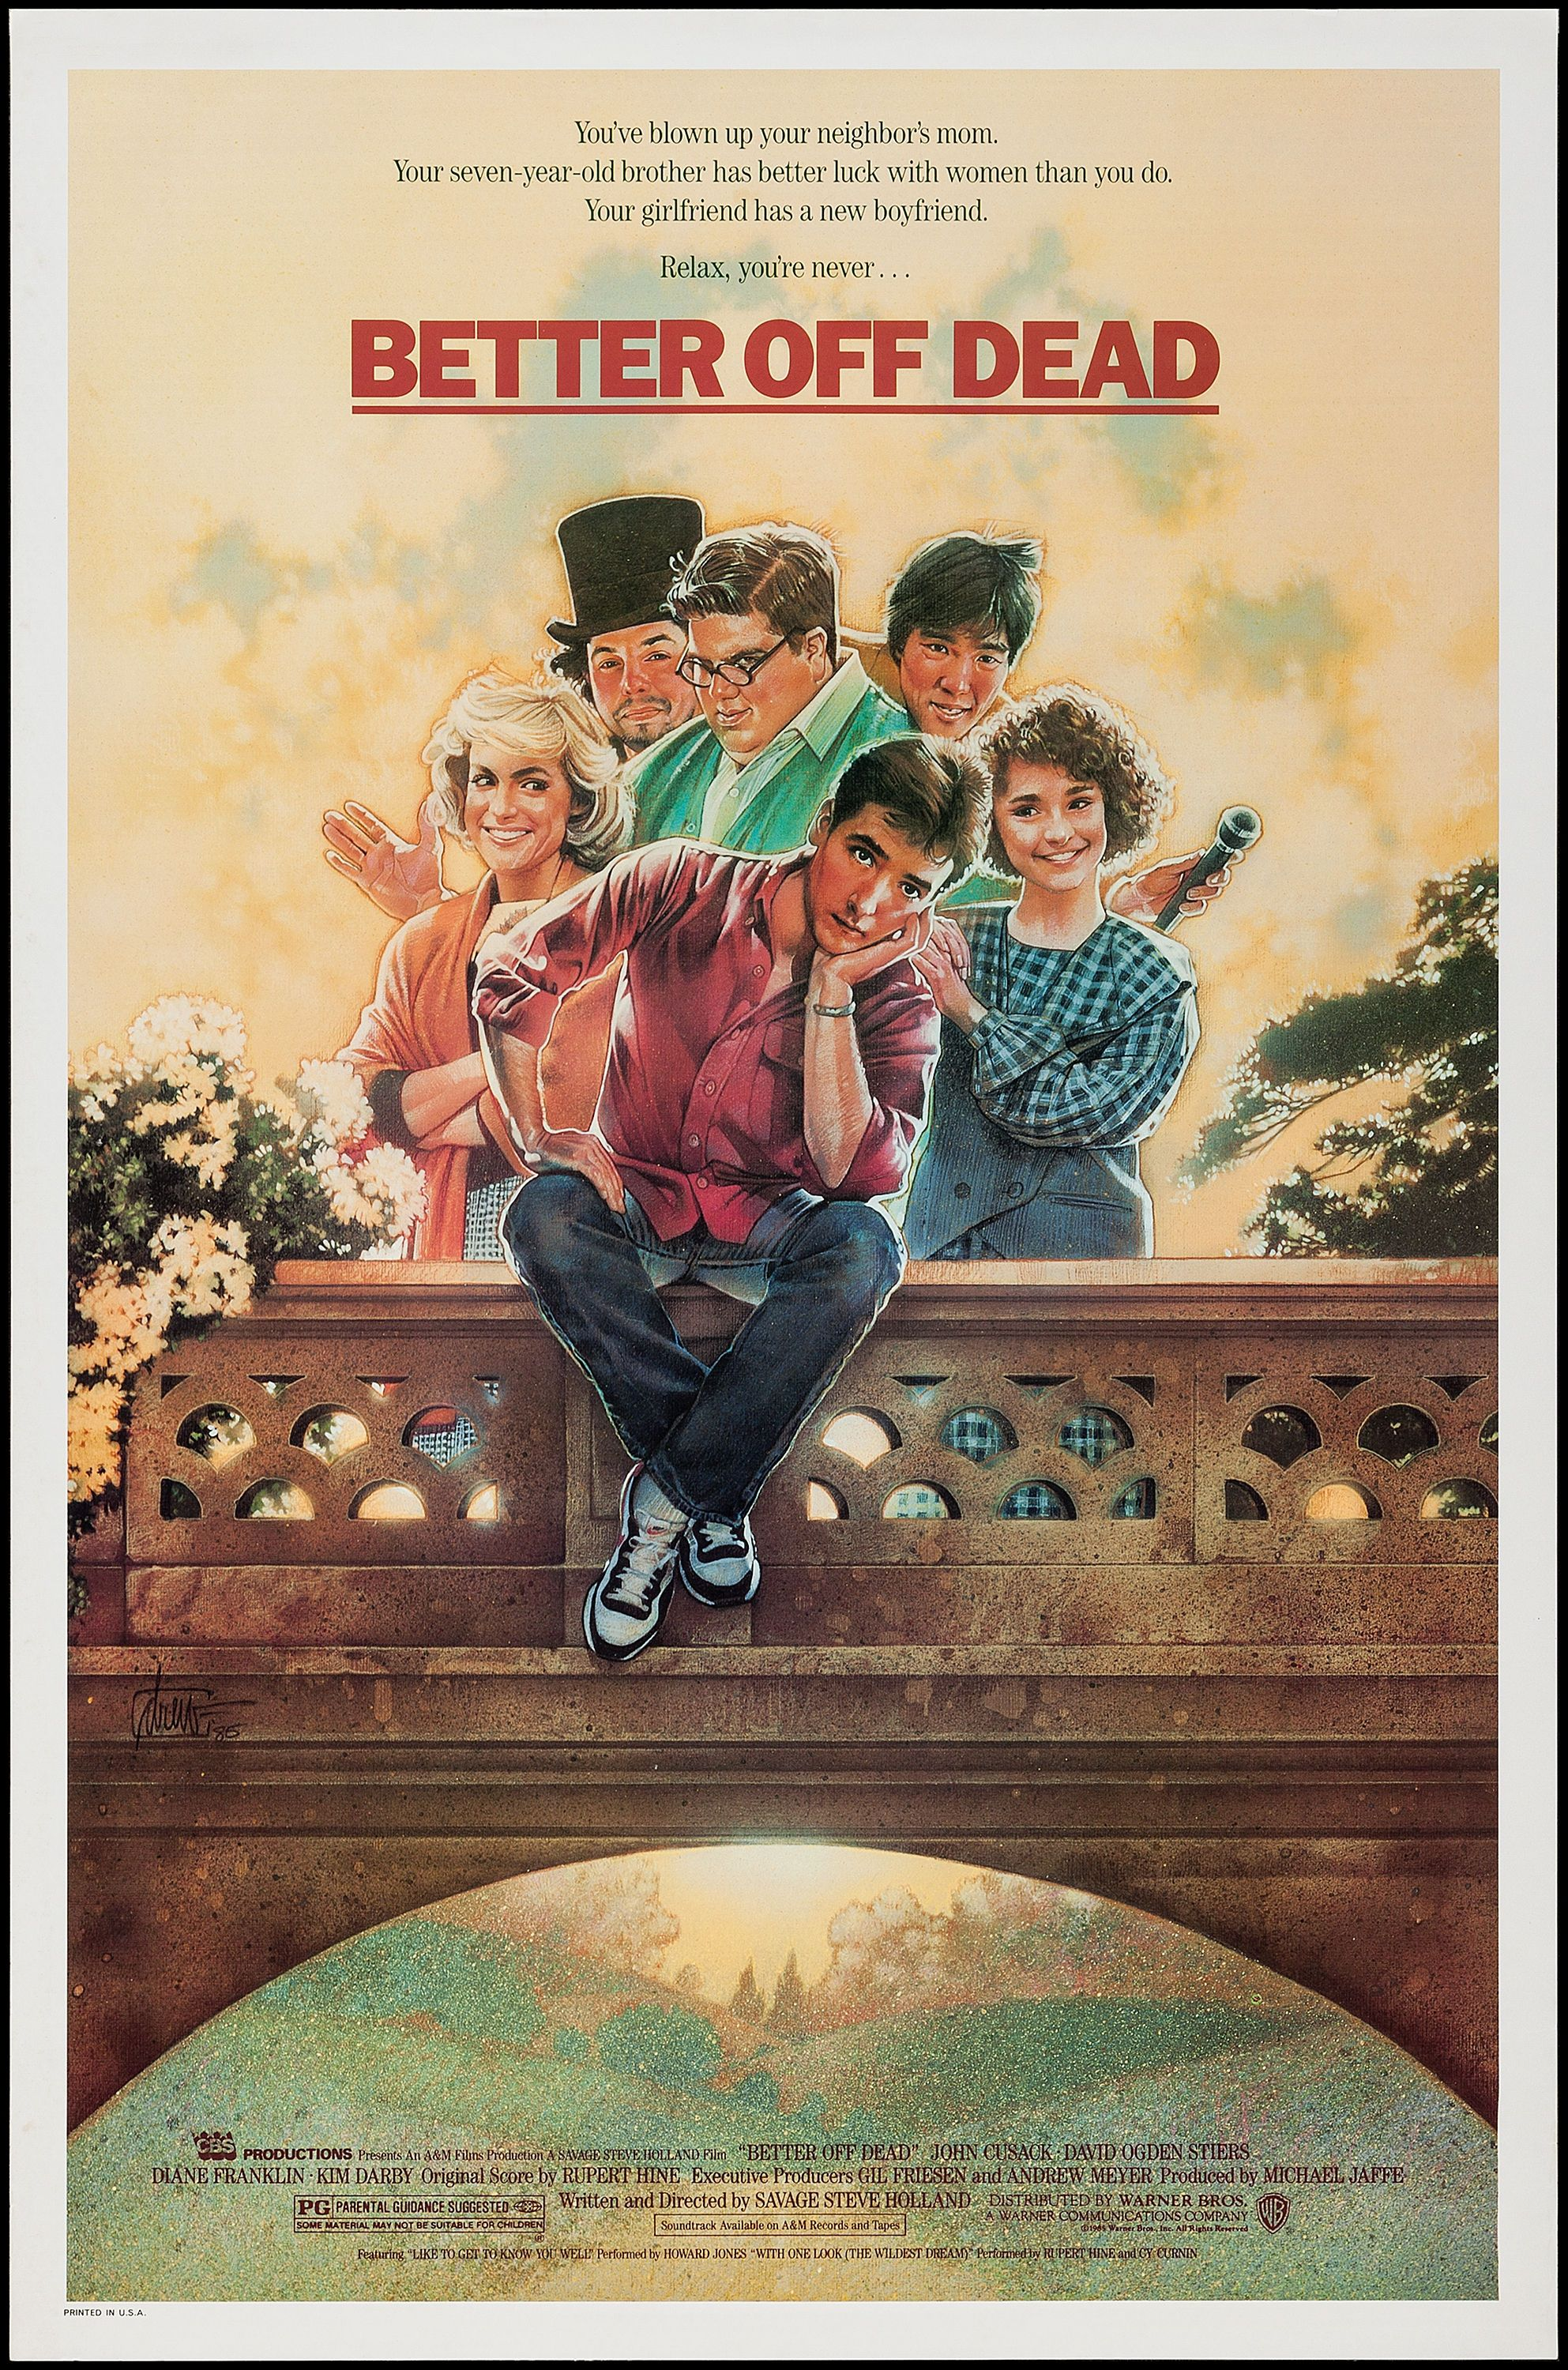 Explore Better Off Dead, Warner Brothers, And More